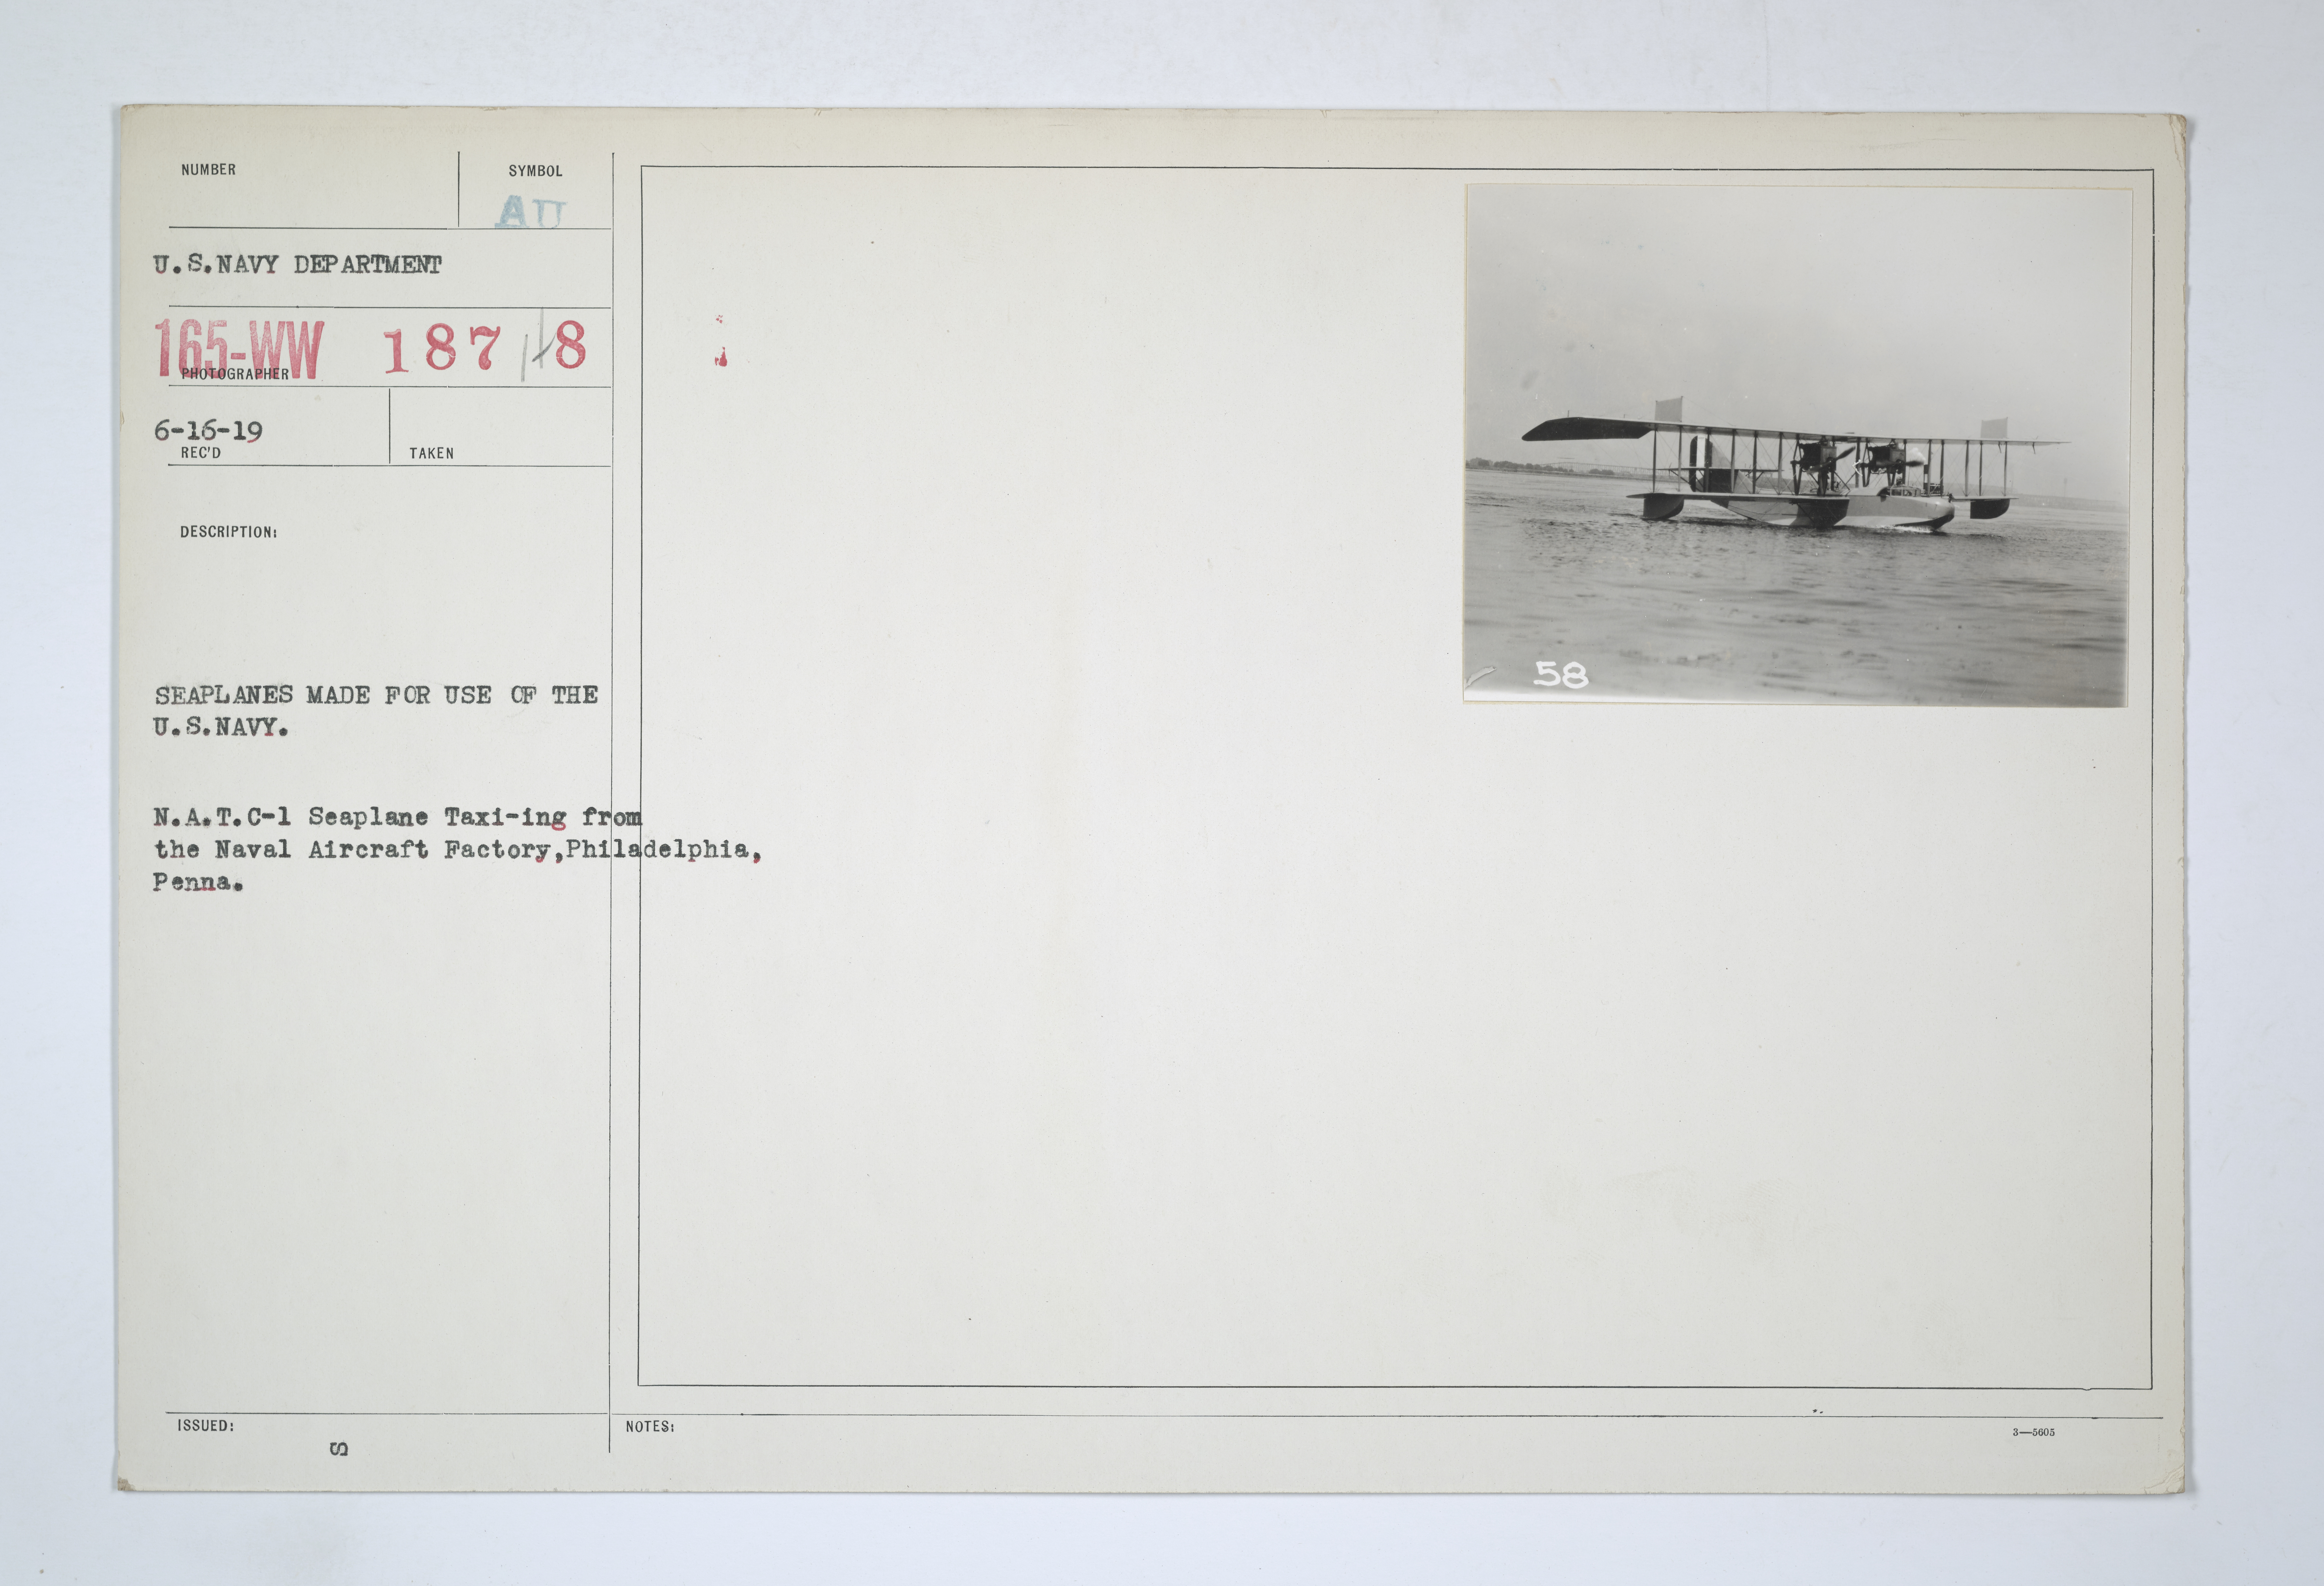 File:Hydroplanes - Types - Model N - AFC-1 - SEAPLANES MADE